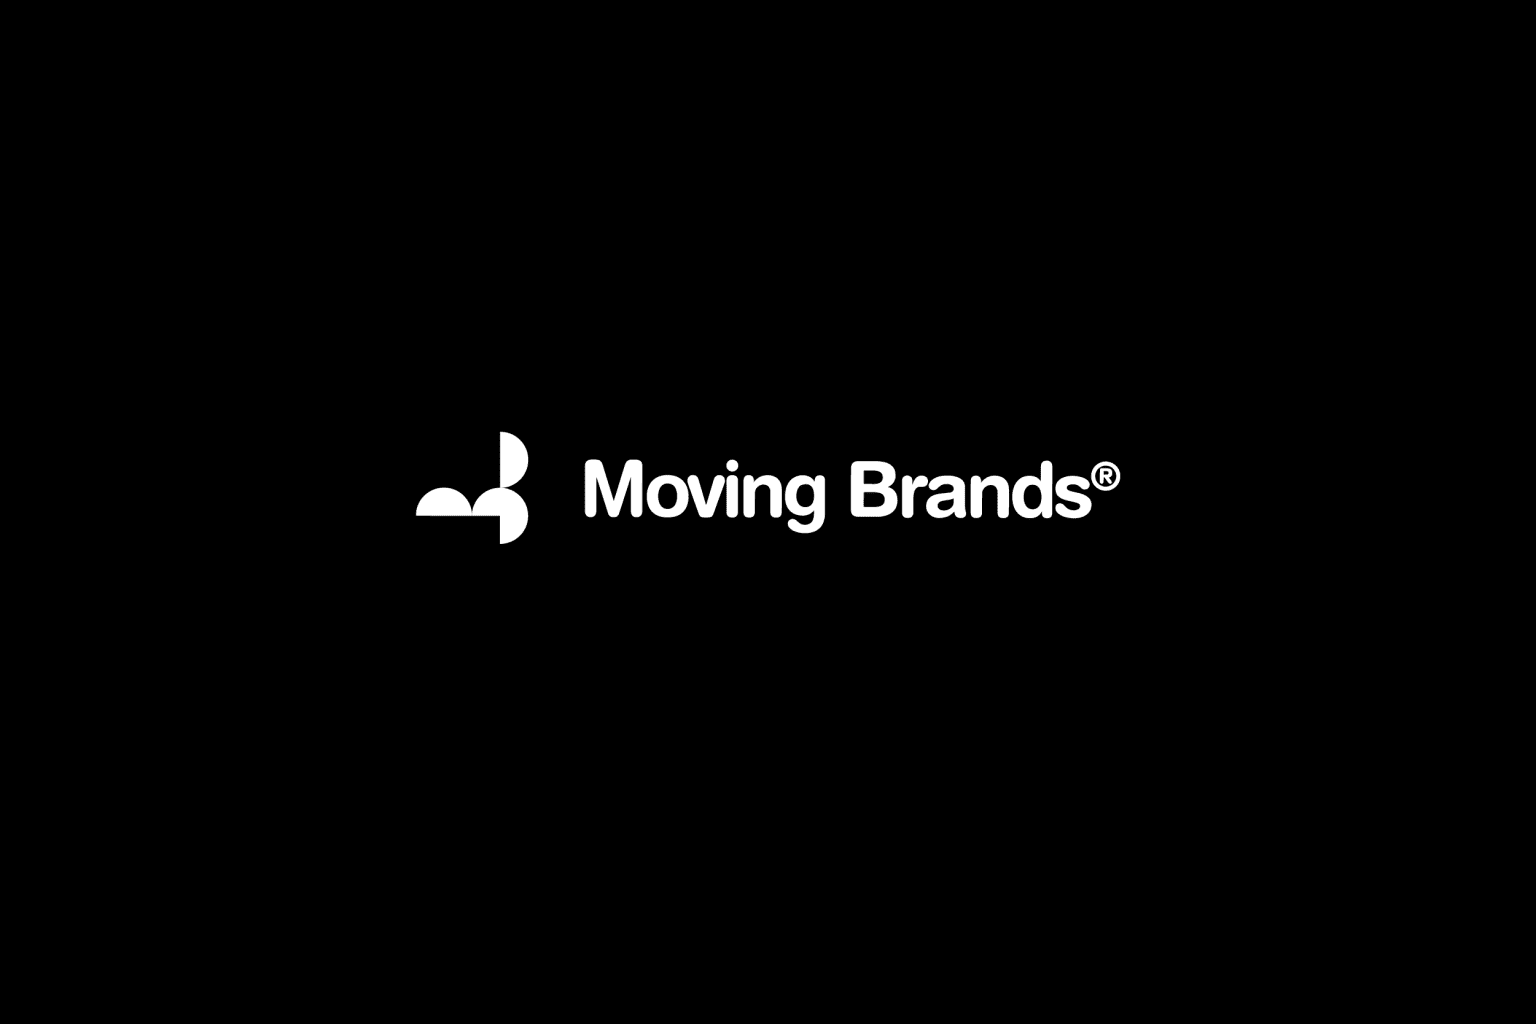 Moving Brands experience